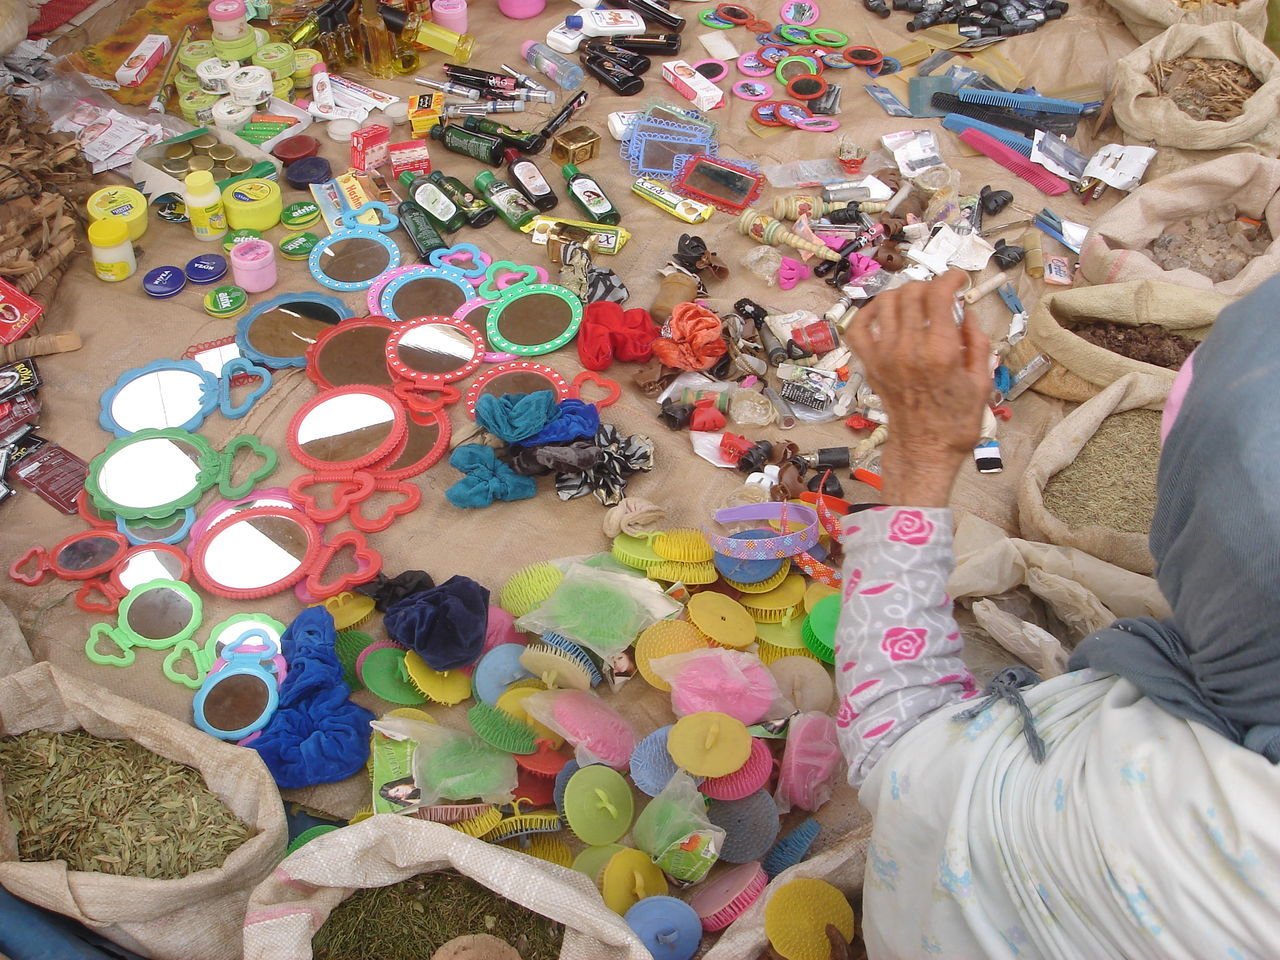 Adult Adults Only Choice Crowd Day High Angle View Large Group Of Objects Main Maquillage Market Stall Miroir Multi Colored Outdoors People Produits Souk Vieille Femme